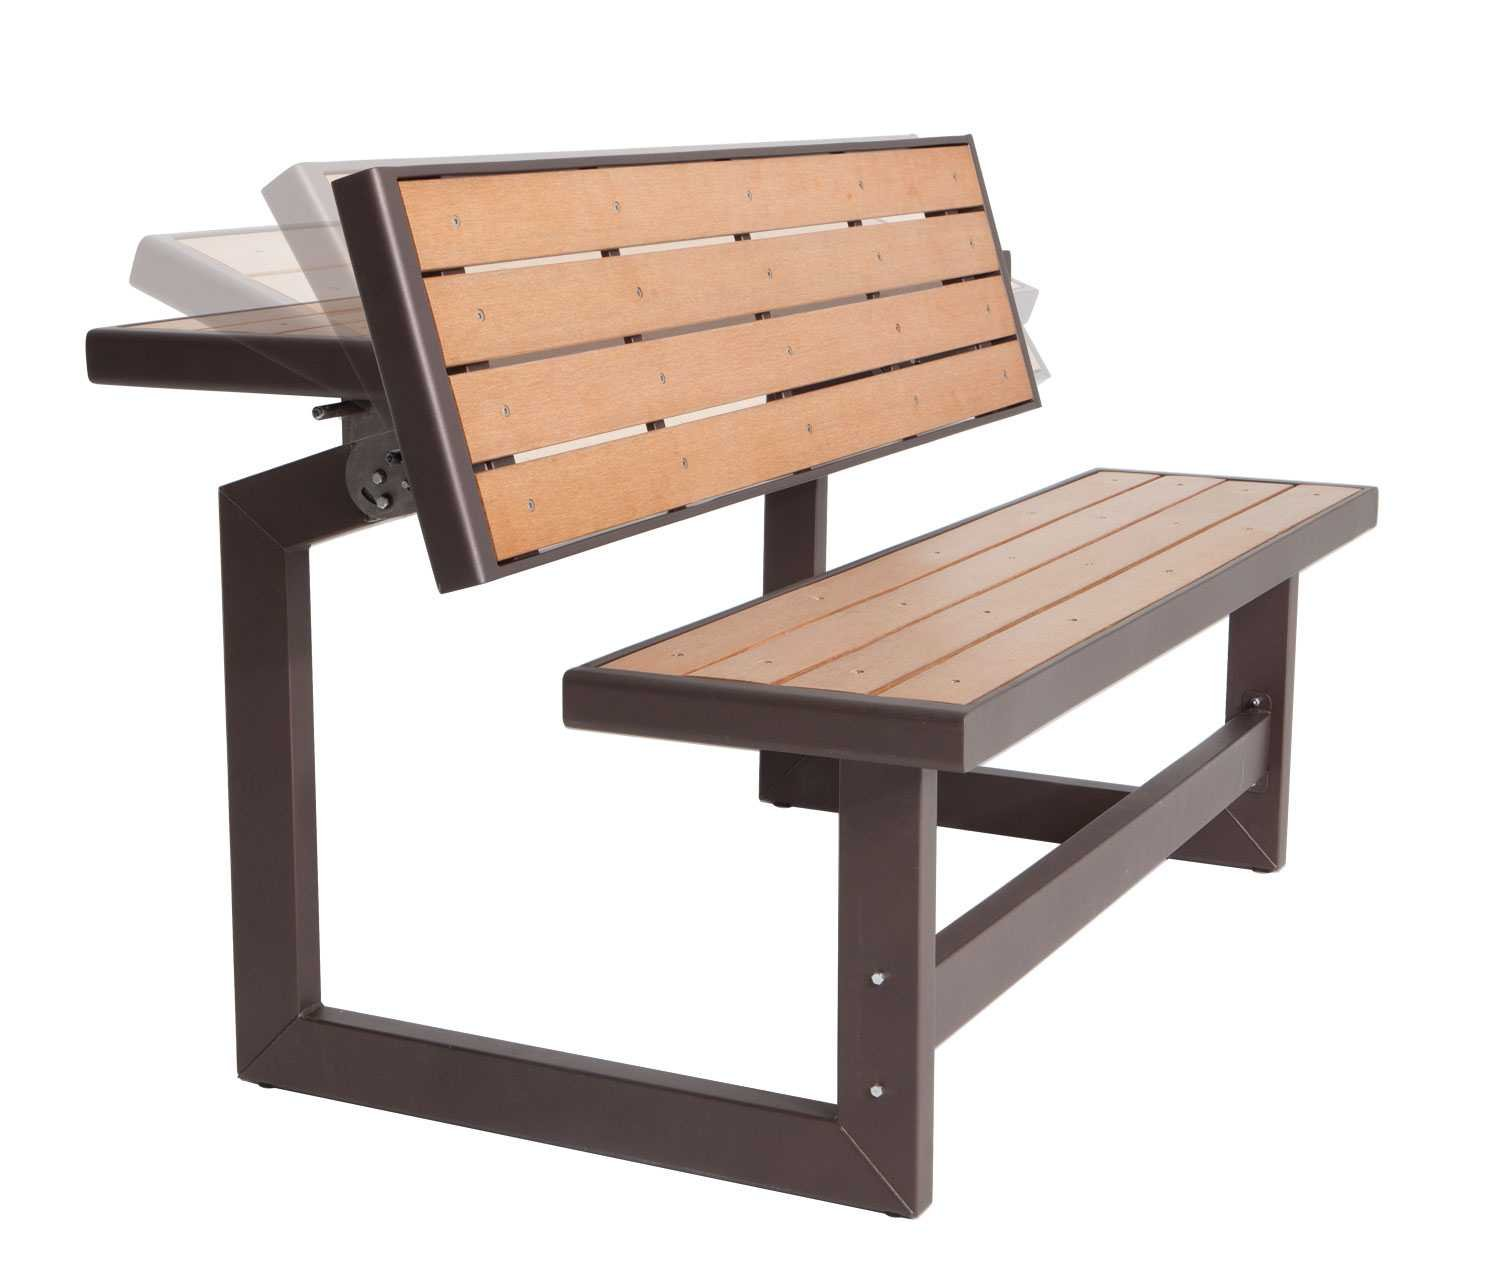 Amazon.com: White - Benches / Patio Furniture & Accessories: Patio